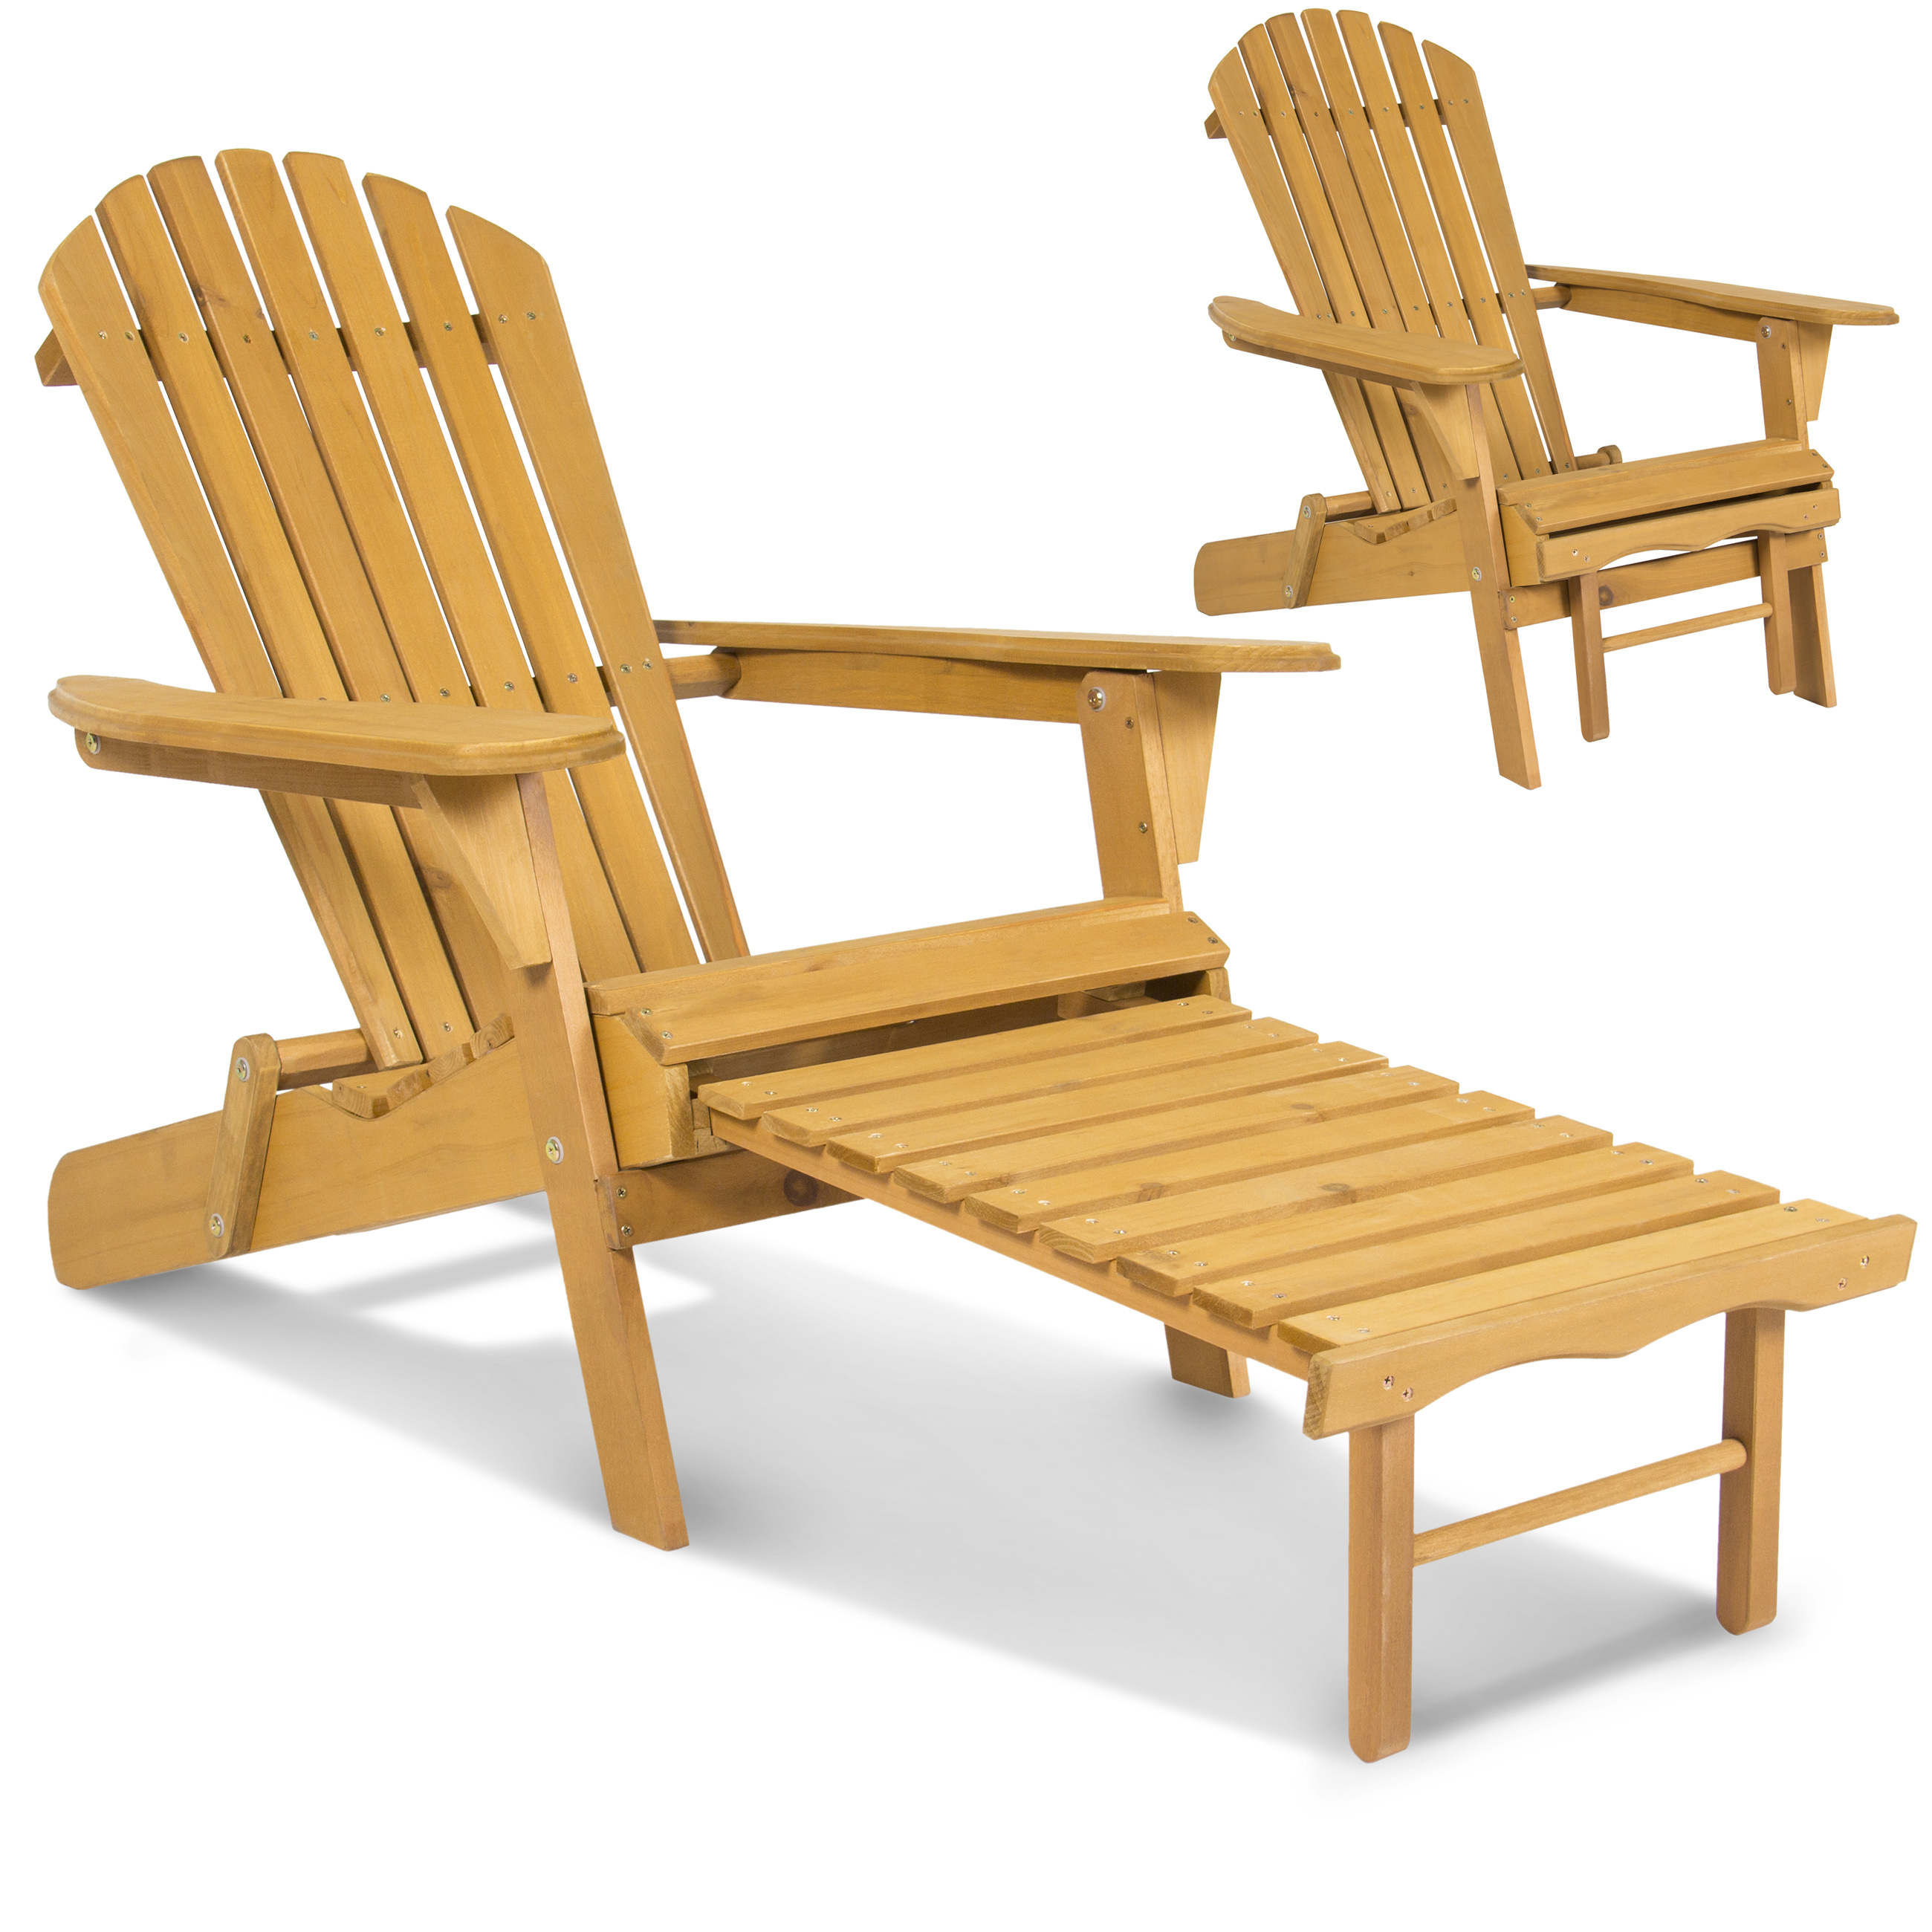 Miraculous Best Choice Products Foldable Wood Adirondack Chair W Pull Short Links Chair Design For Home Short Linksinfo